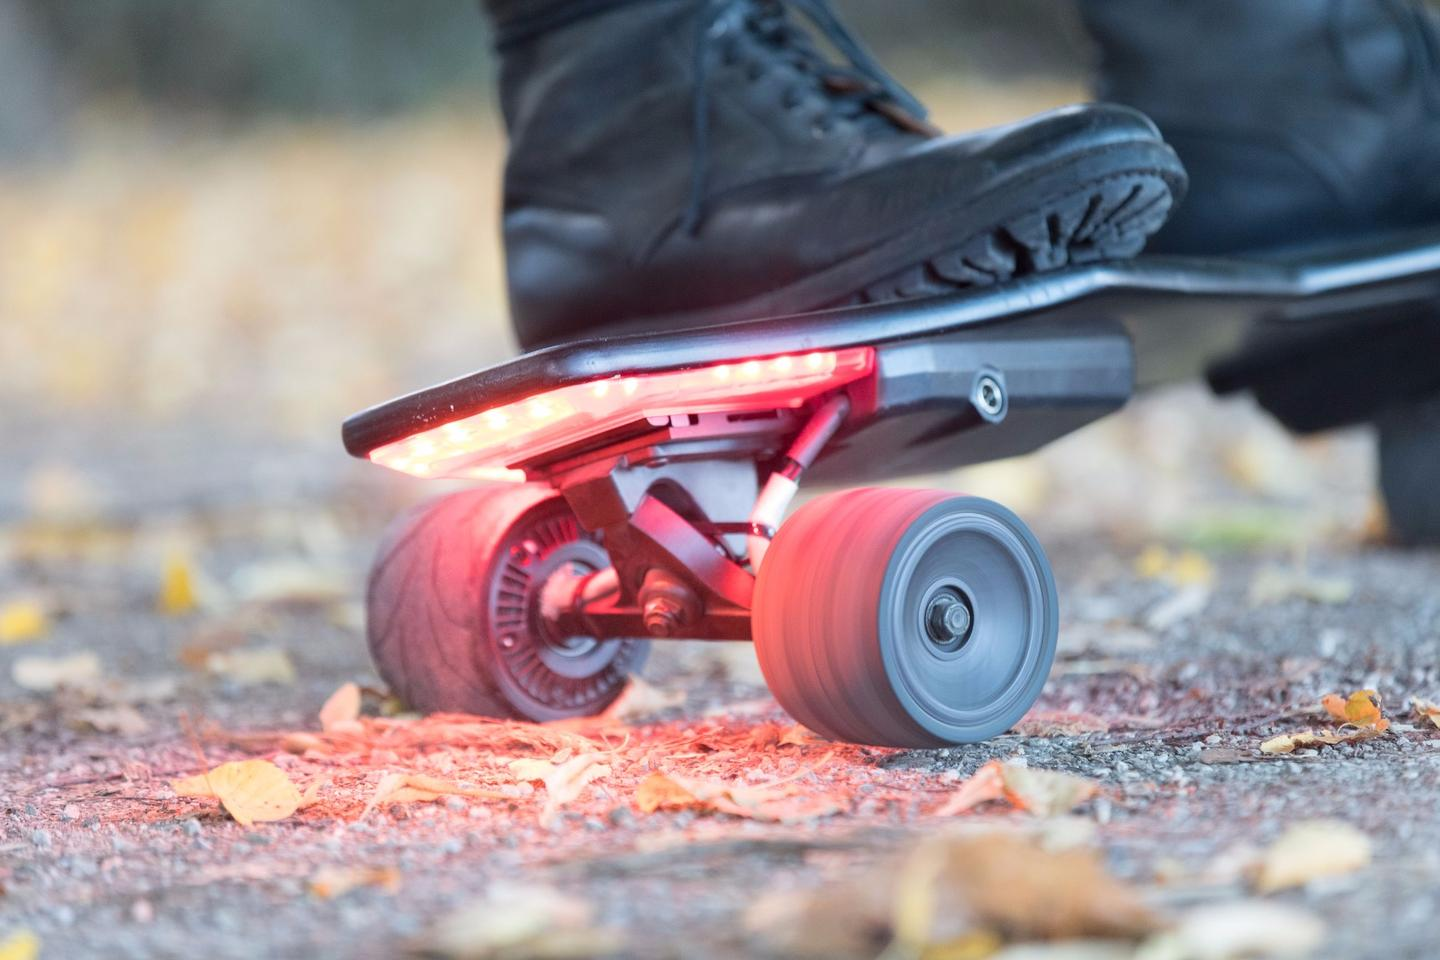 The StarkBoard's sensors use body movement for ride control